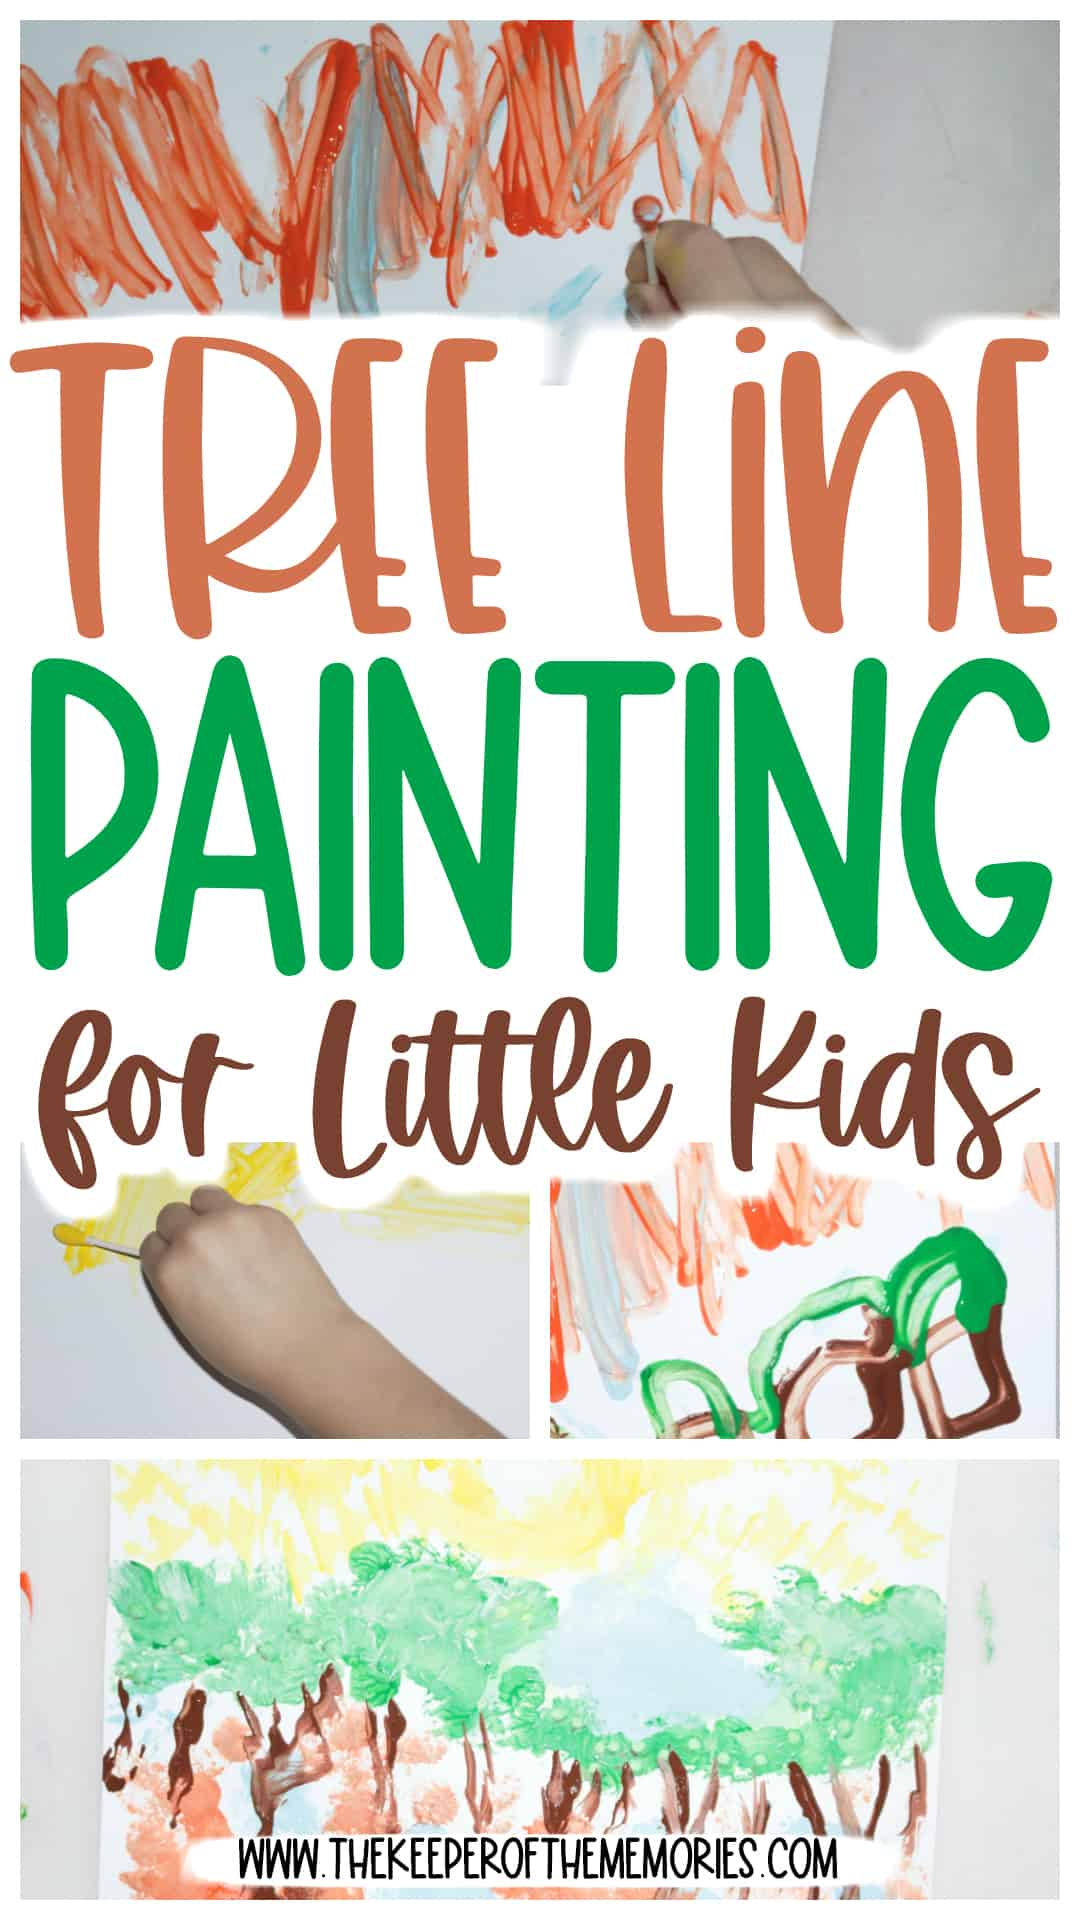 Tree Painting for Kids